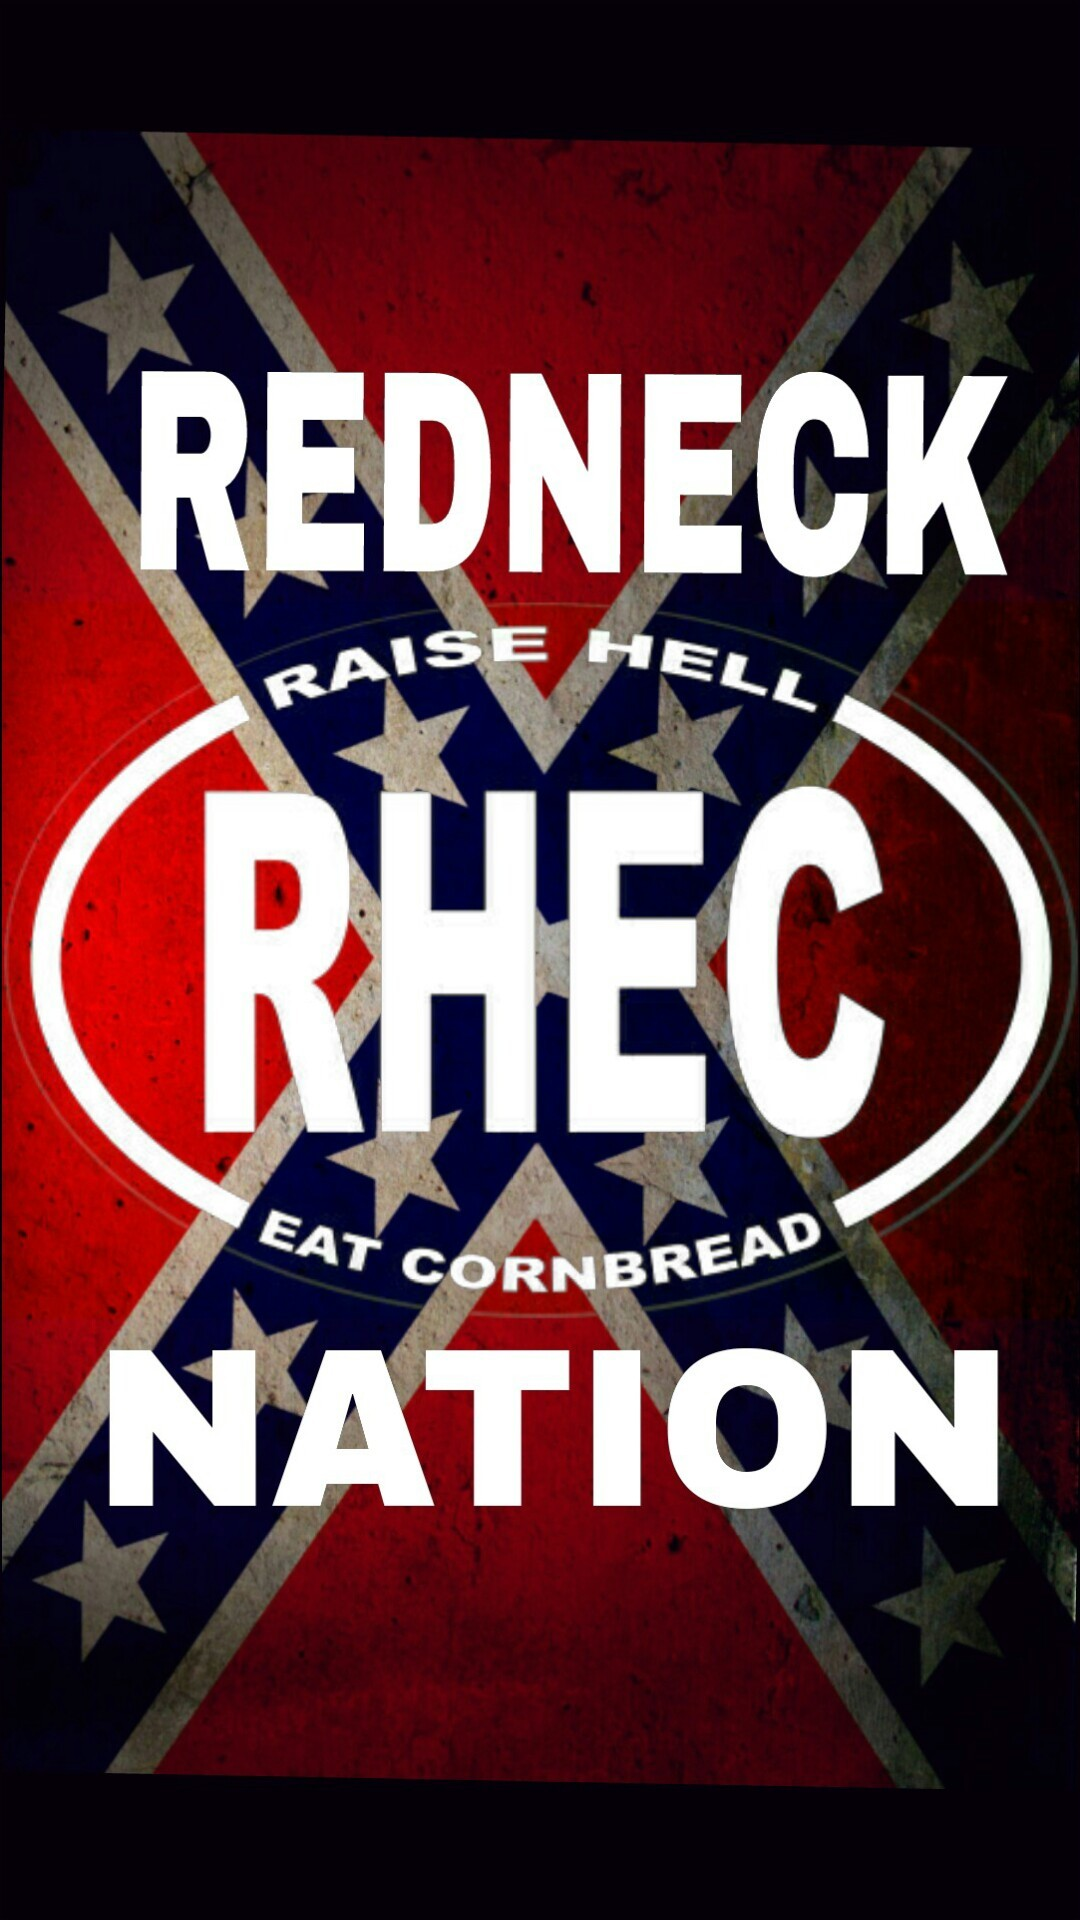 Wallpapers Redneck (49+ images)